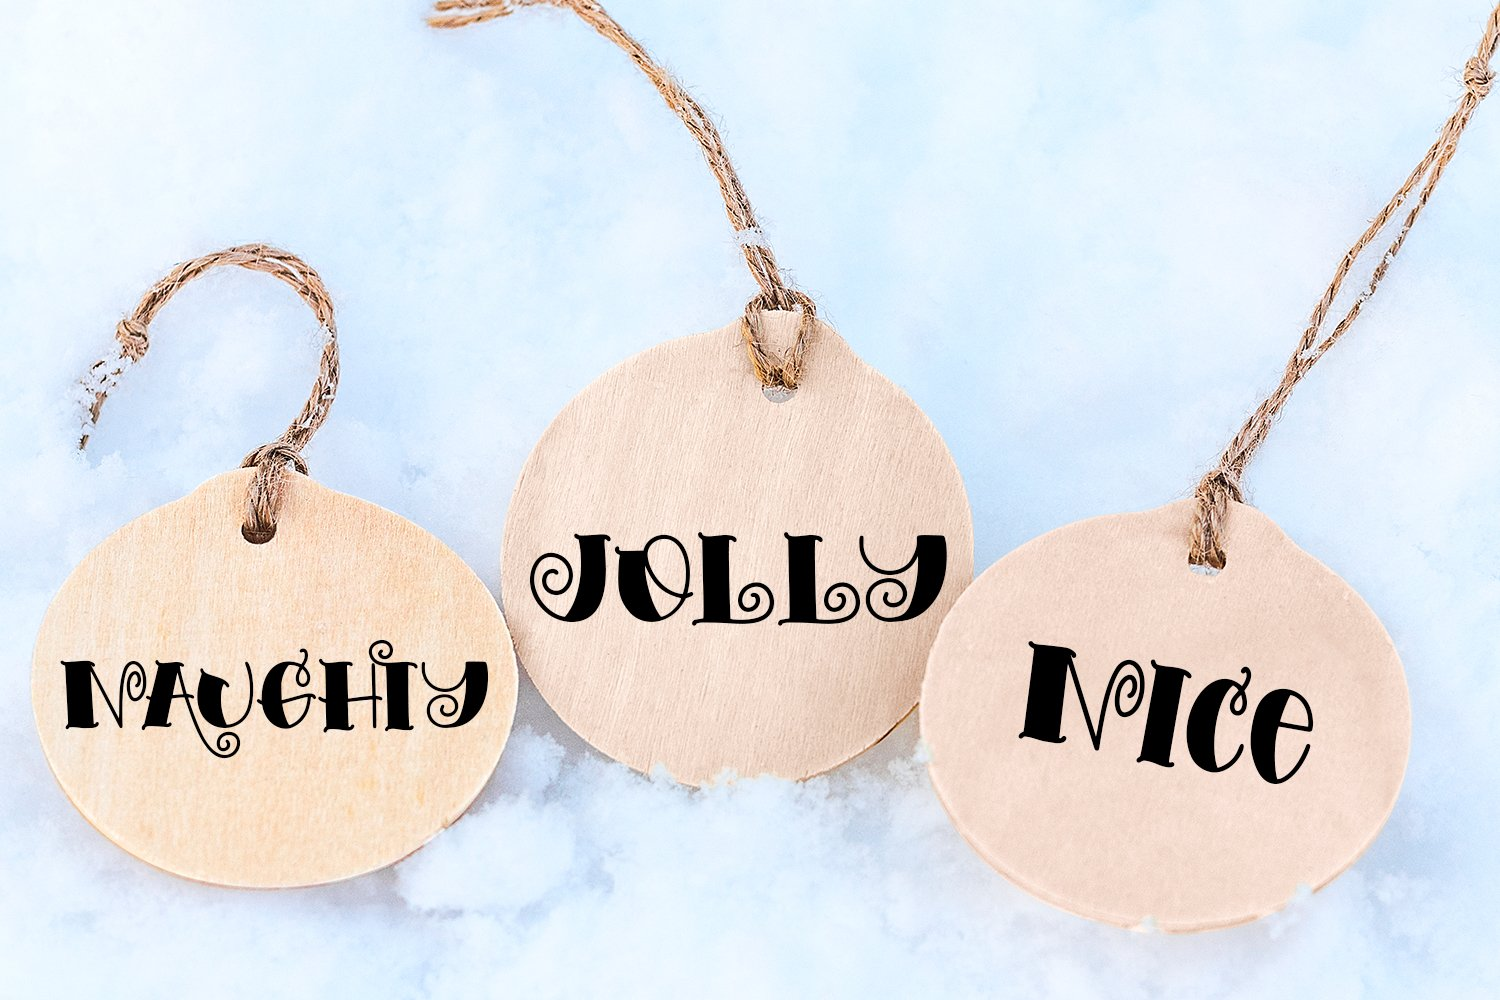 Snowy Mornings - A Hand-Lettered Christmas Font example image 4